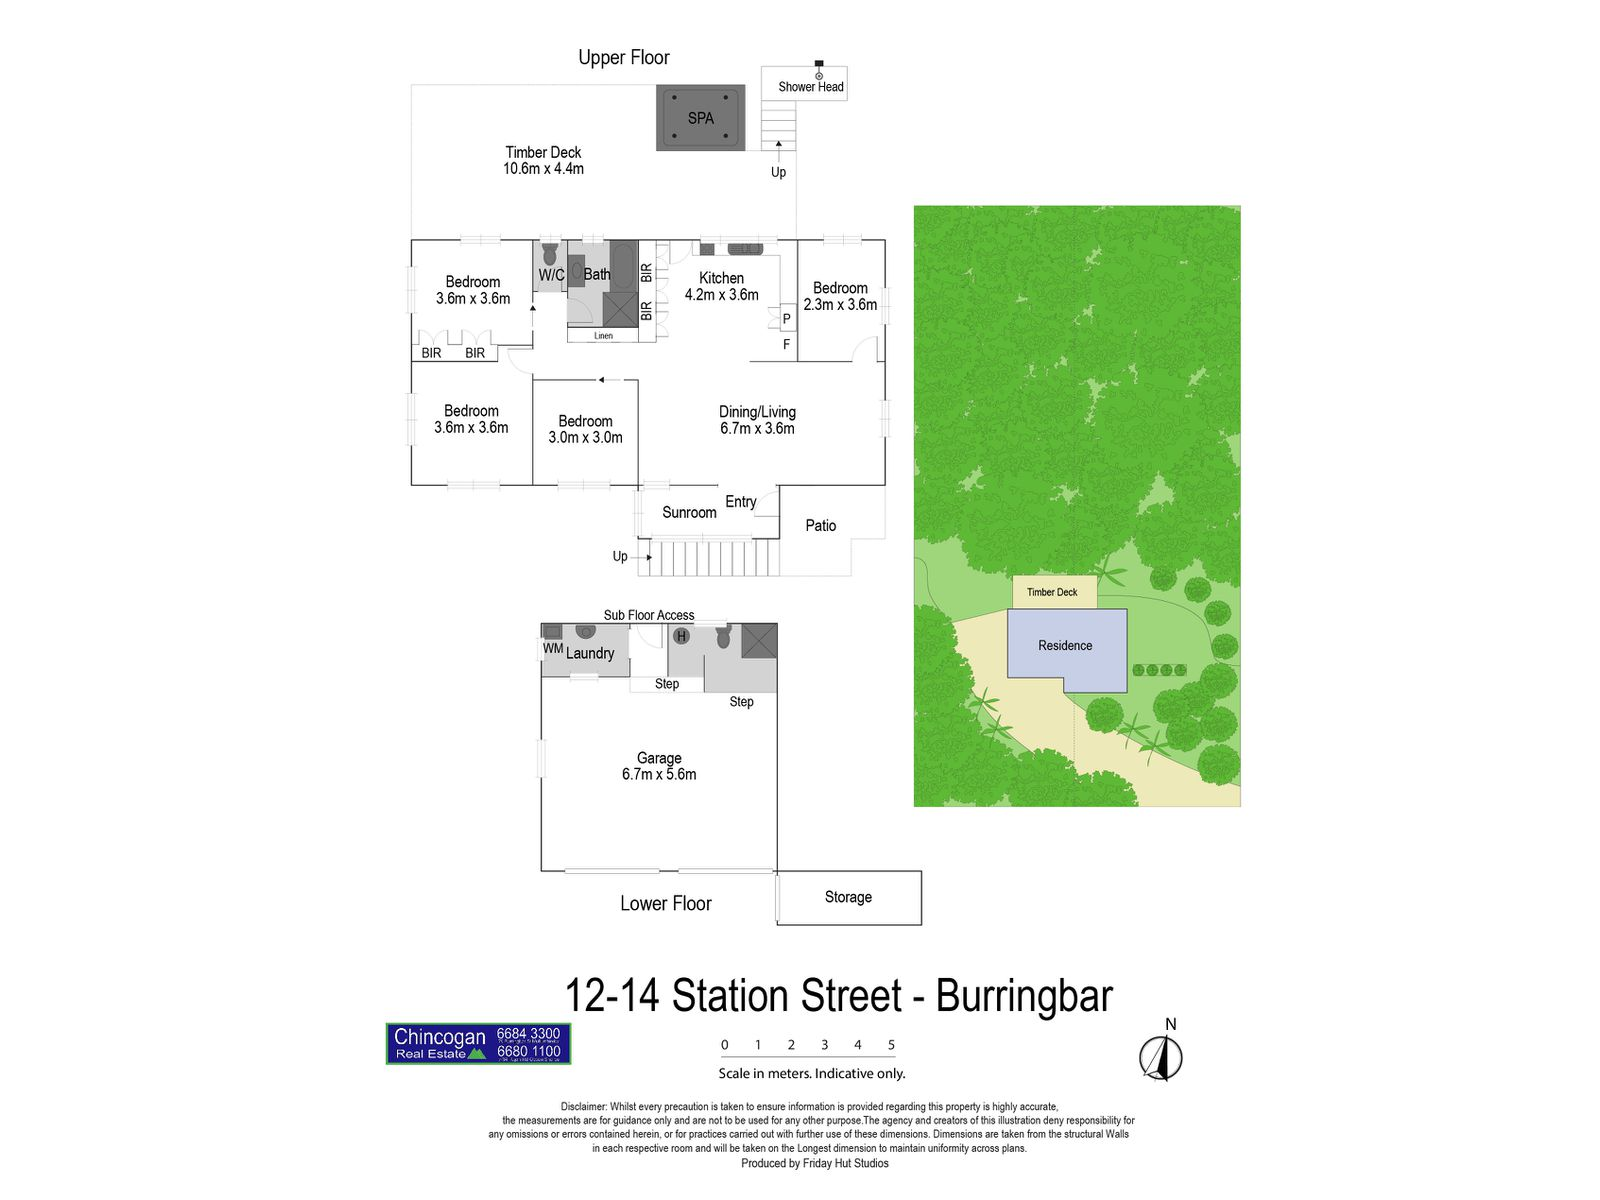 12-14 Station Street, Burringbar